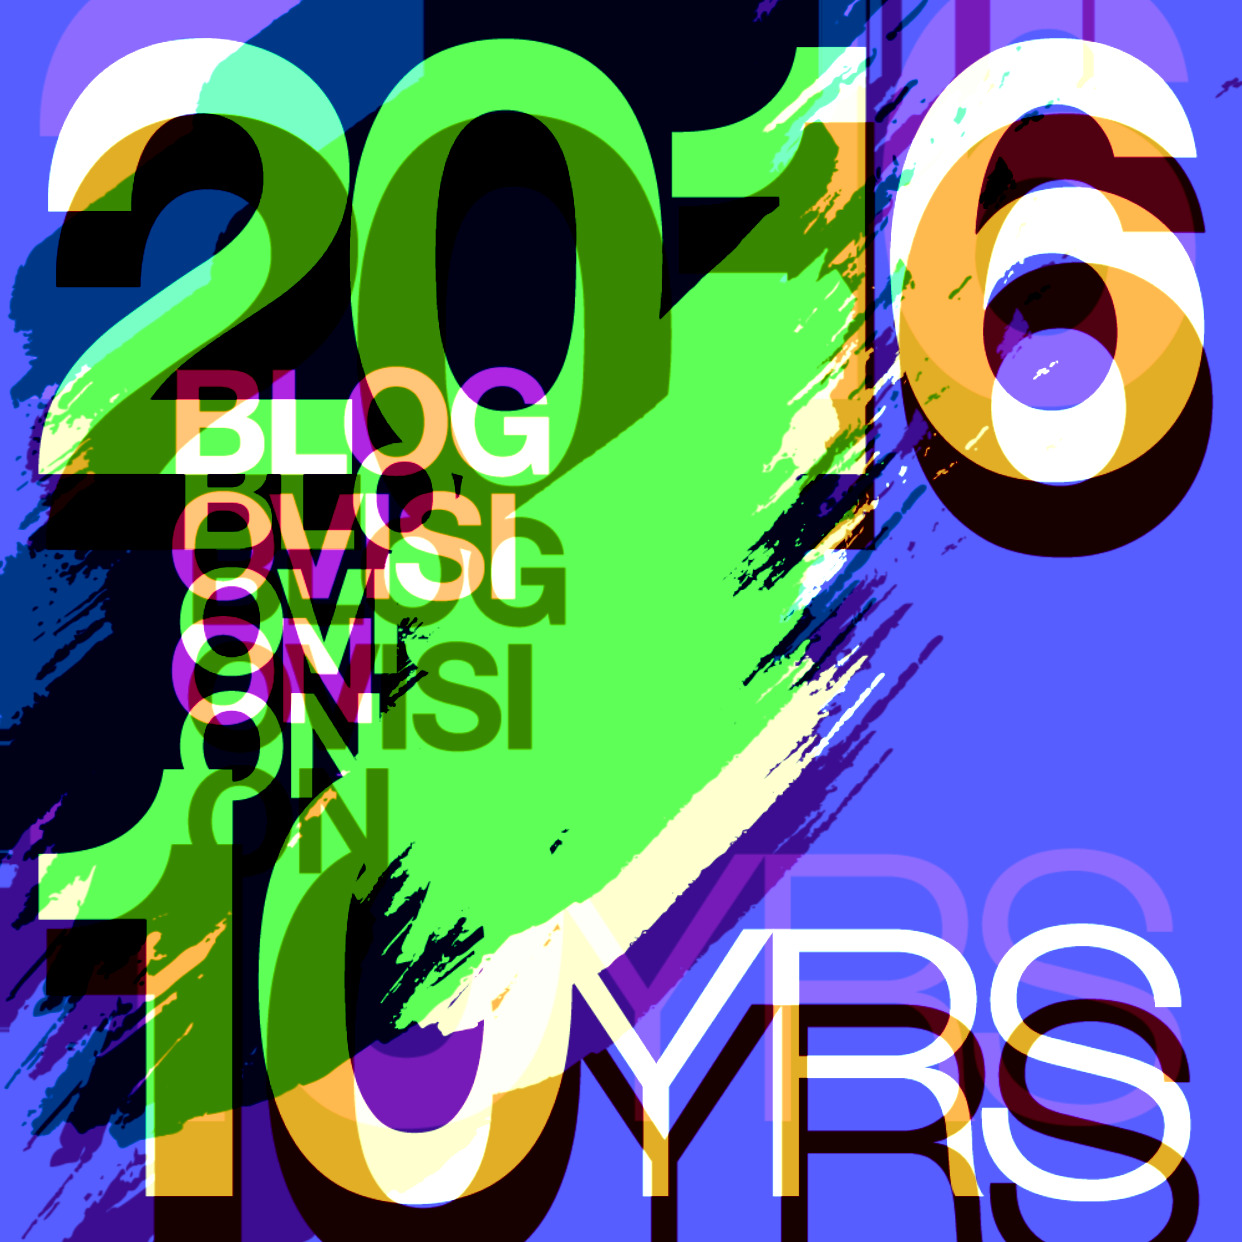 blogovision2016_artwork_02_b